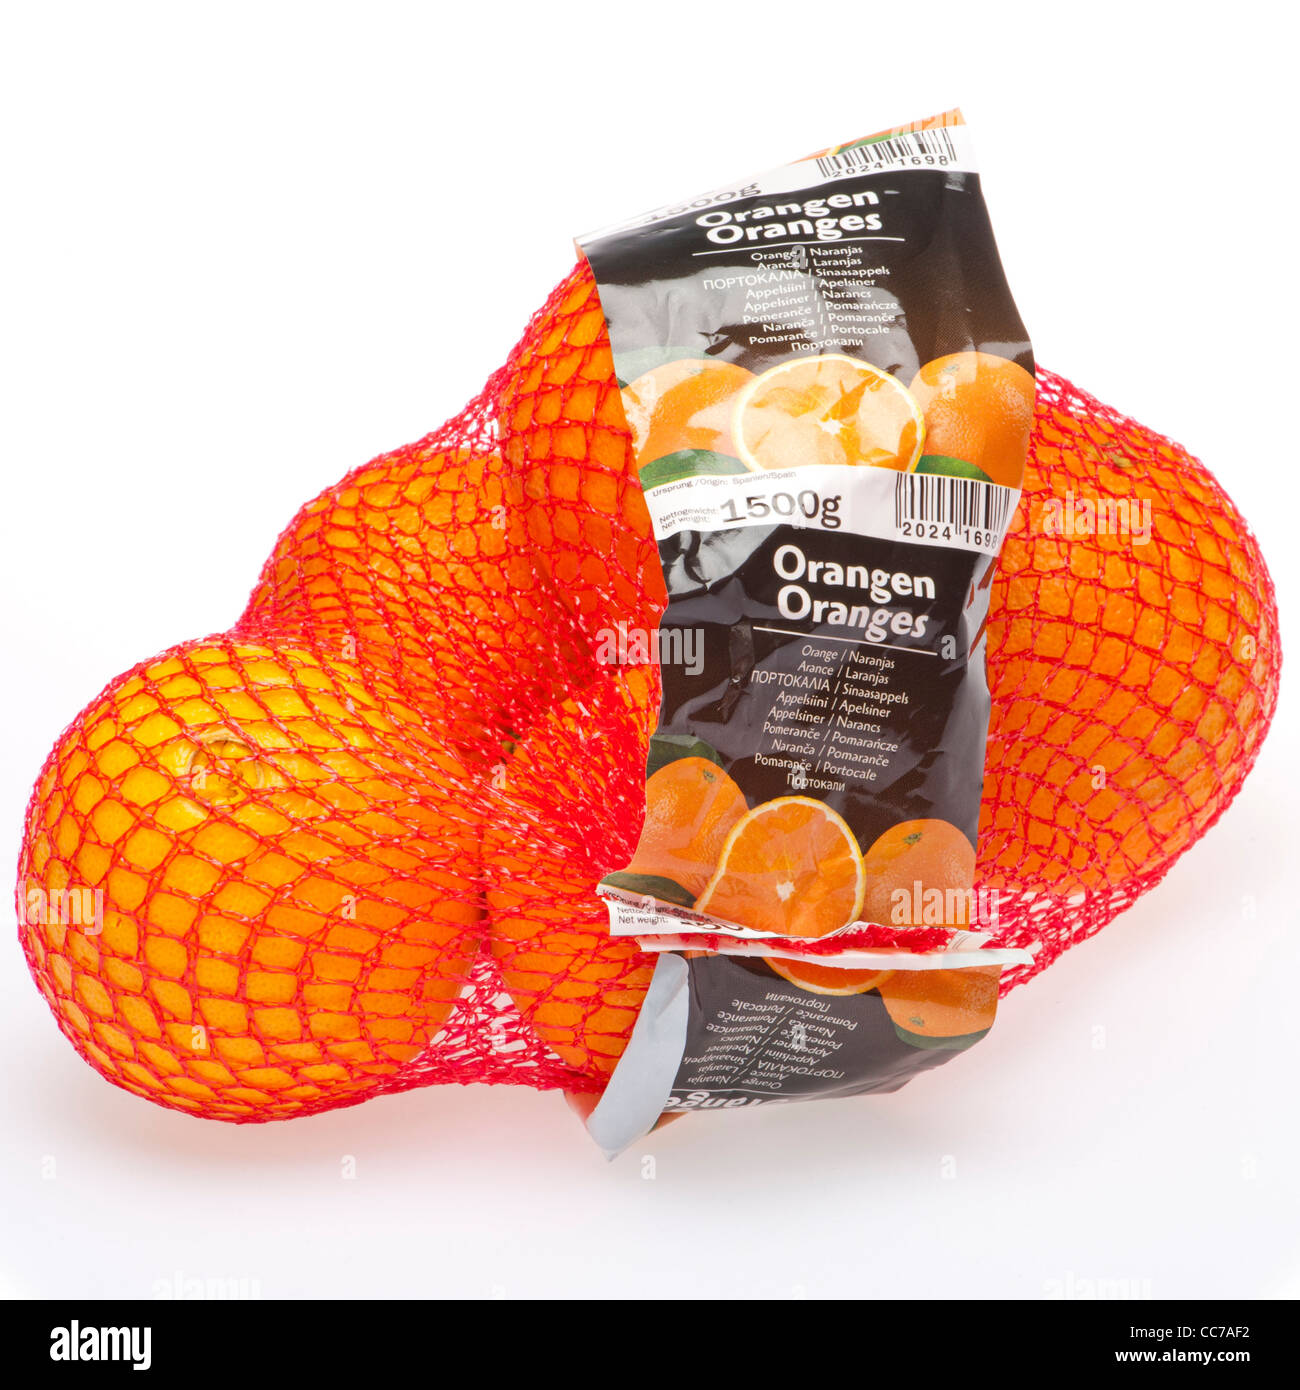 a net of oranges - Stock Image